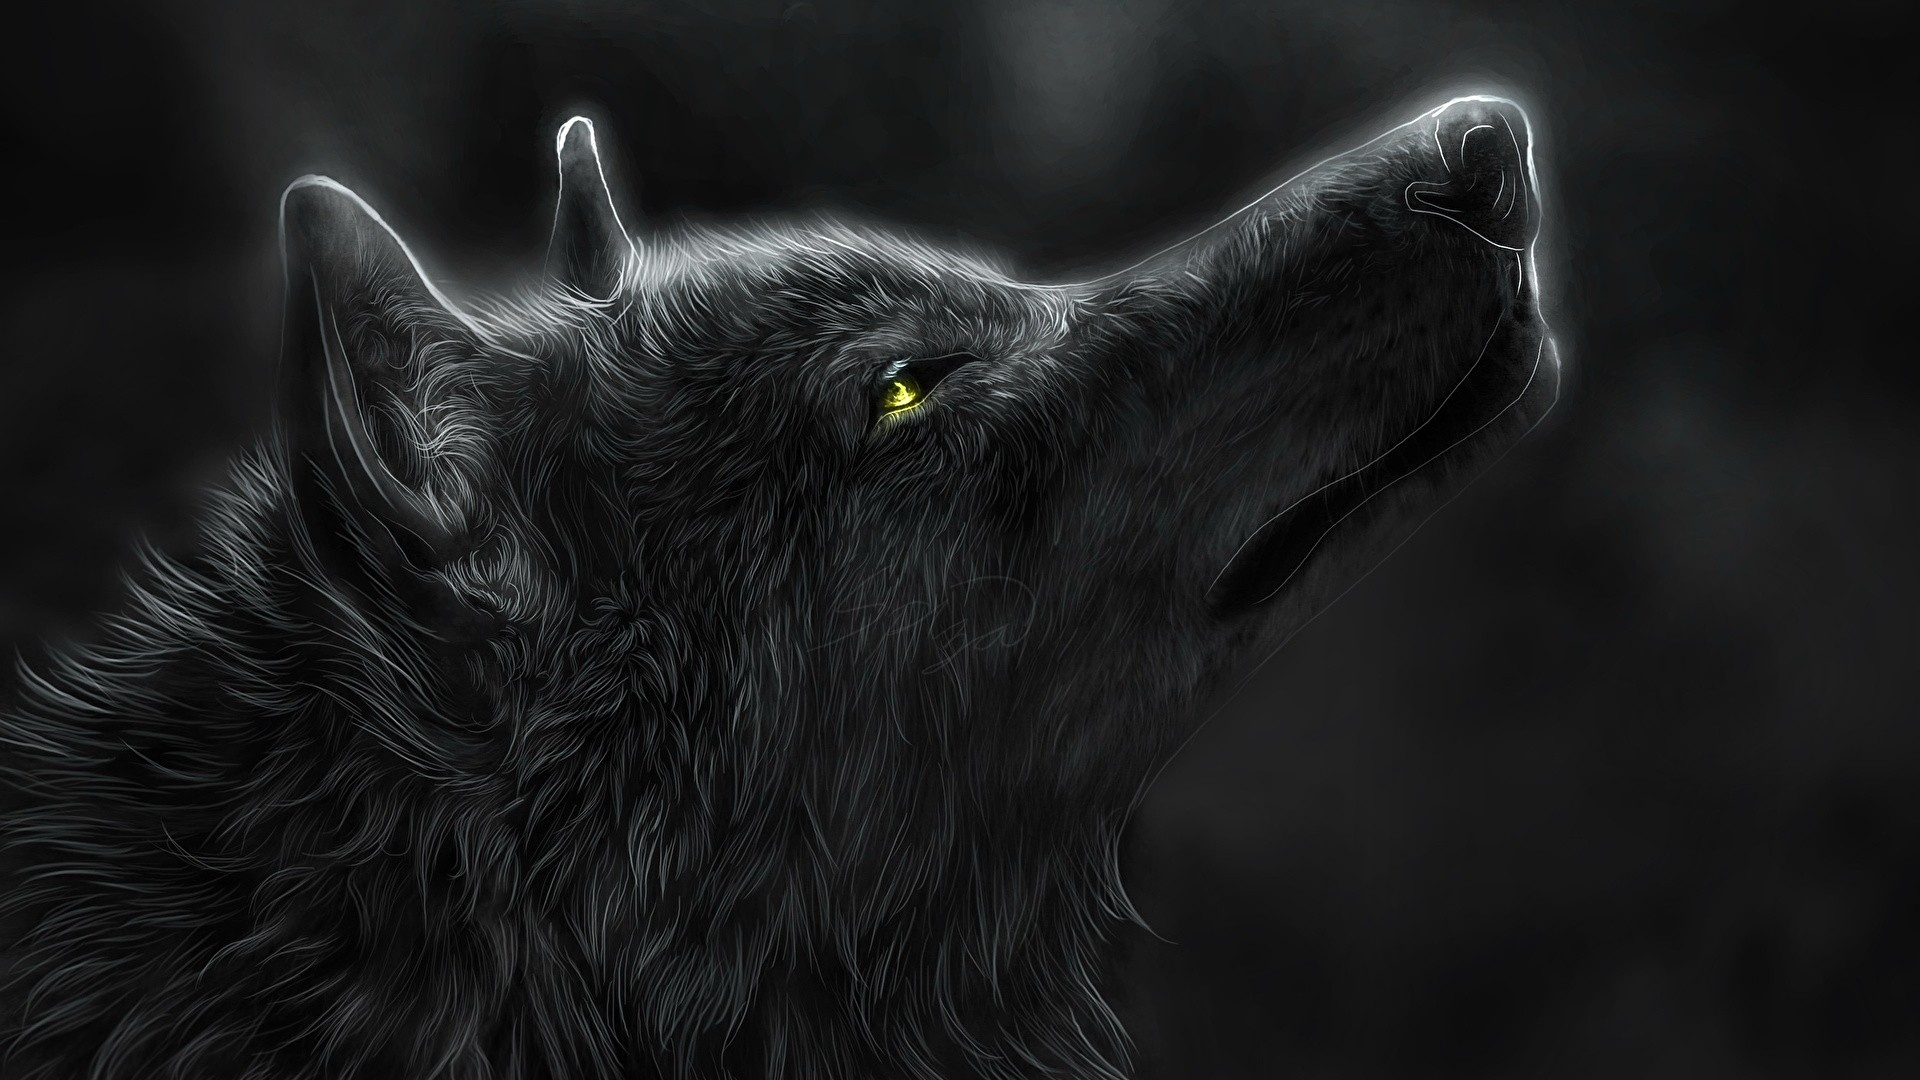 Black Wolf hd desktop wallpaper